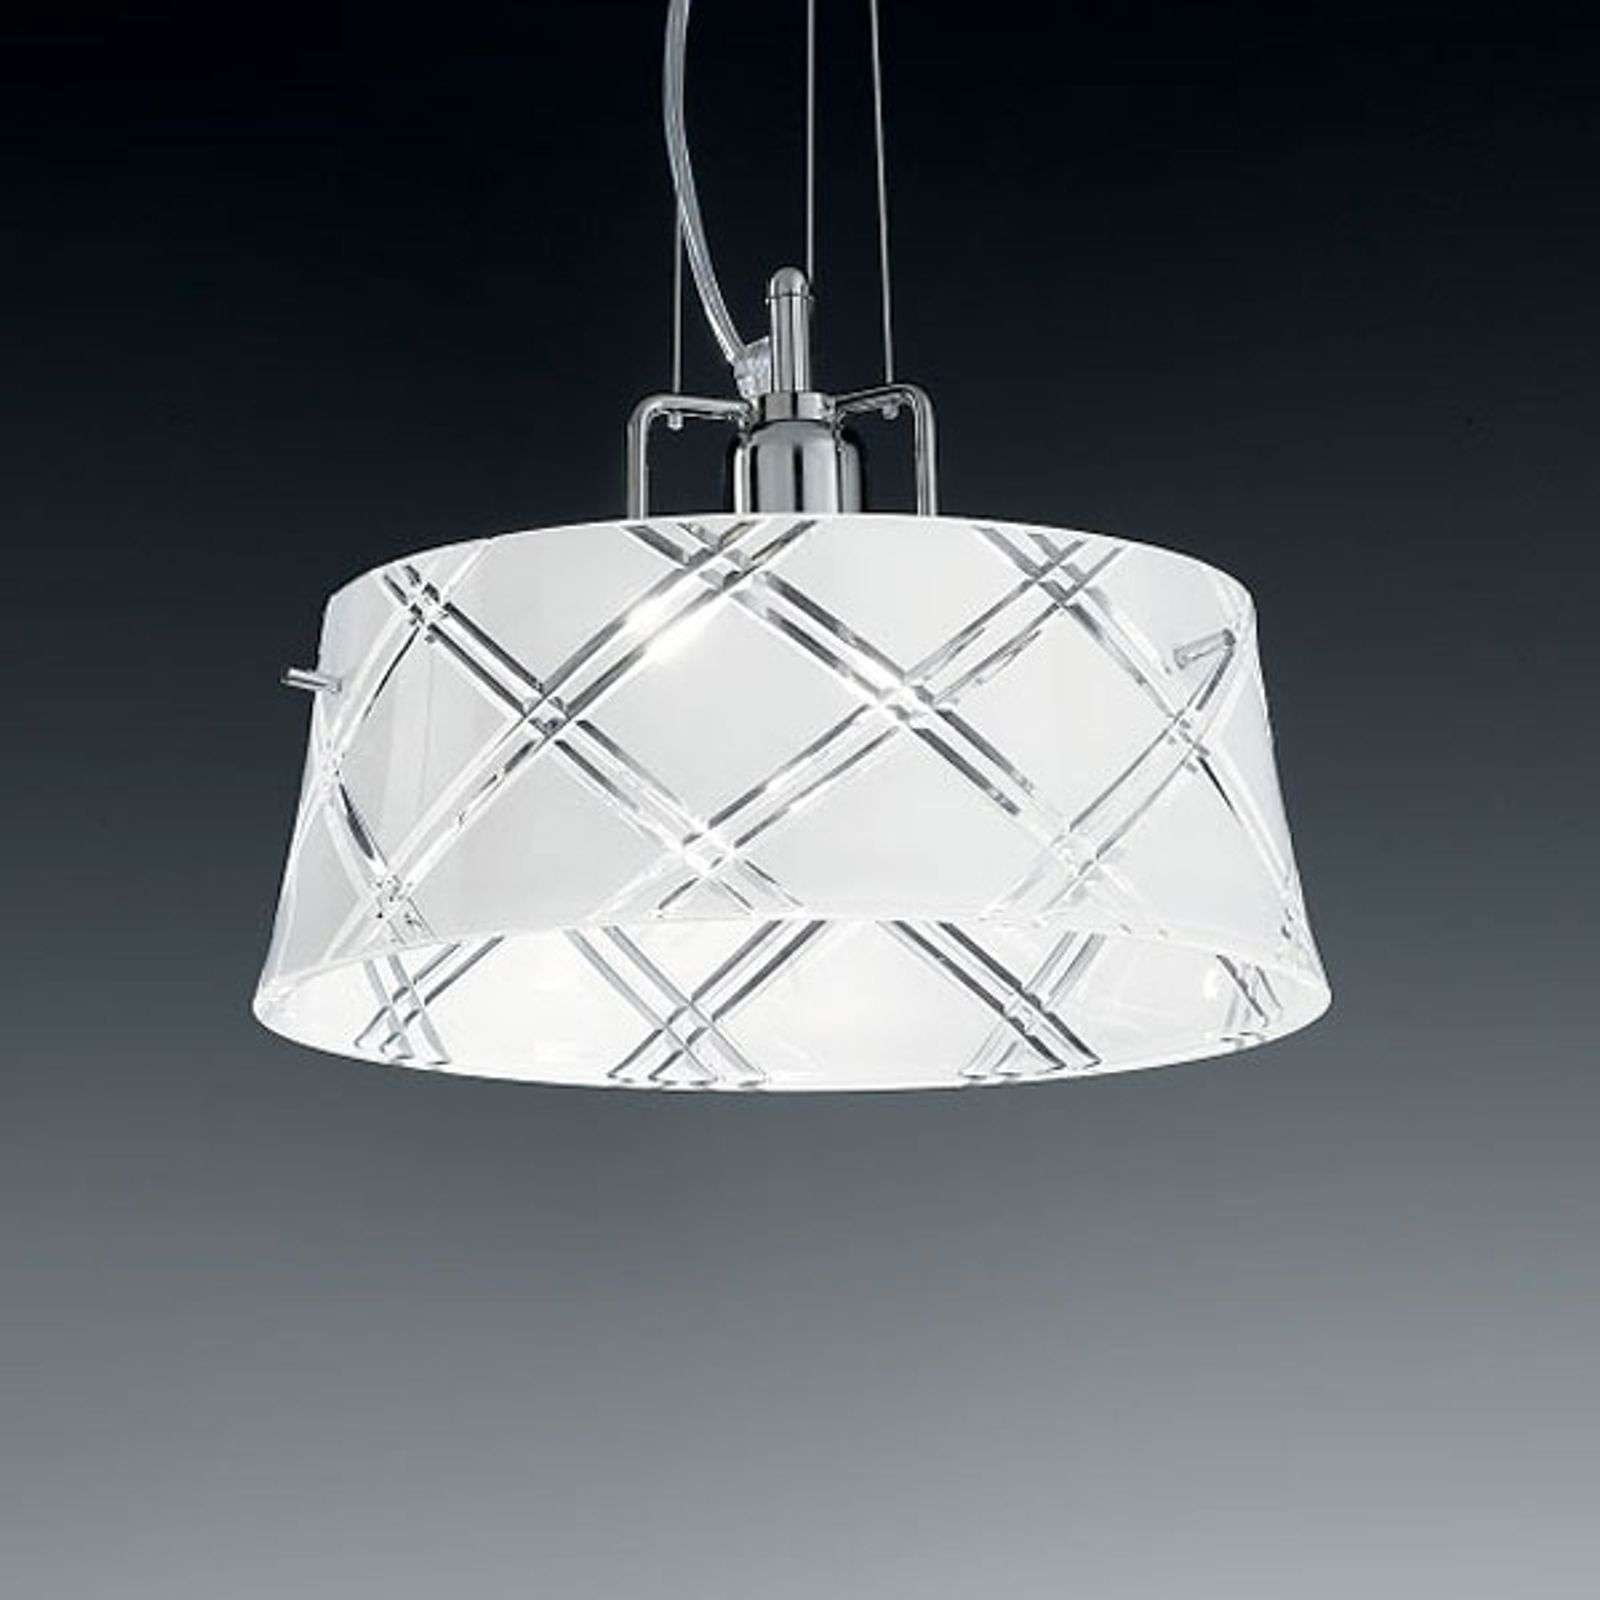 Suspension élégante CORALLO 30, 1 lampe, blanc